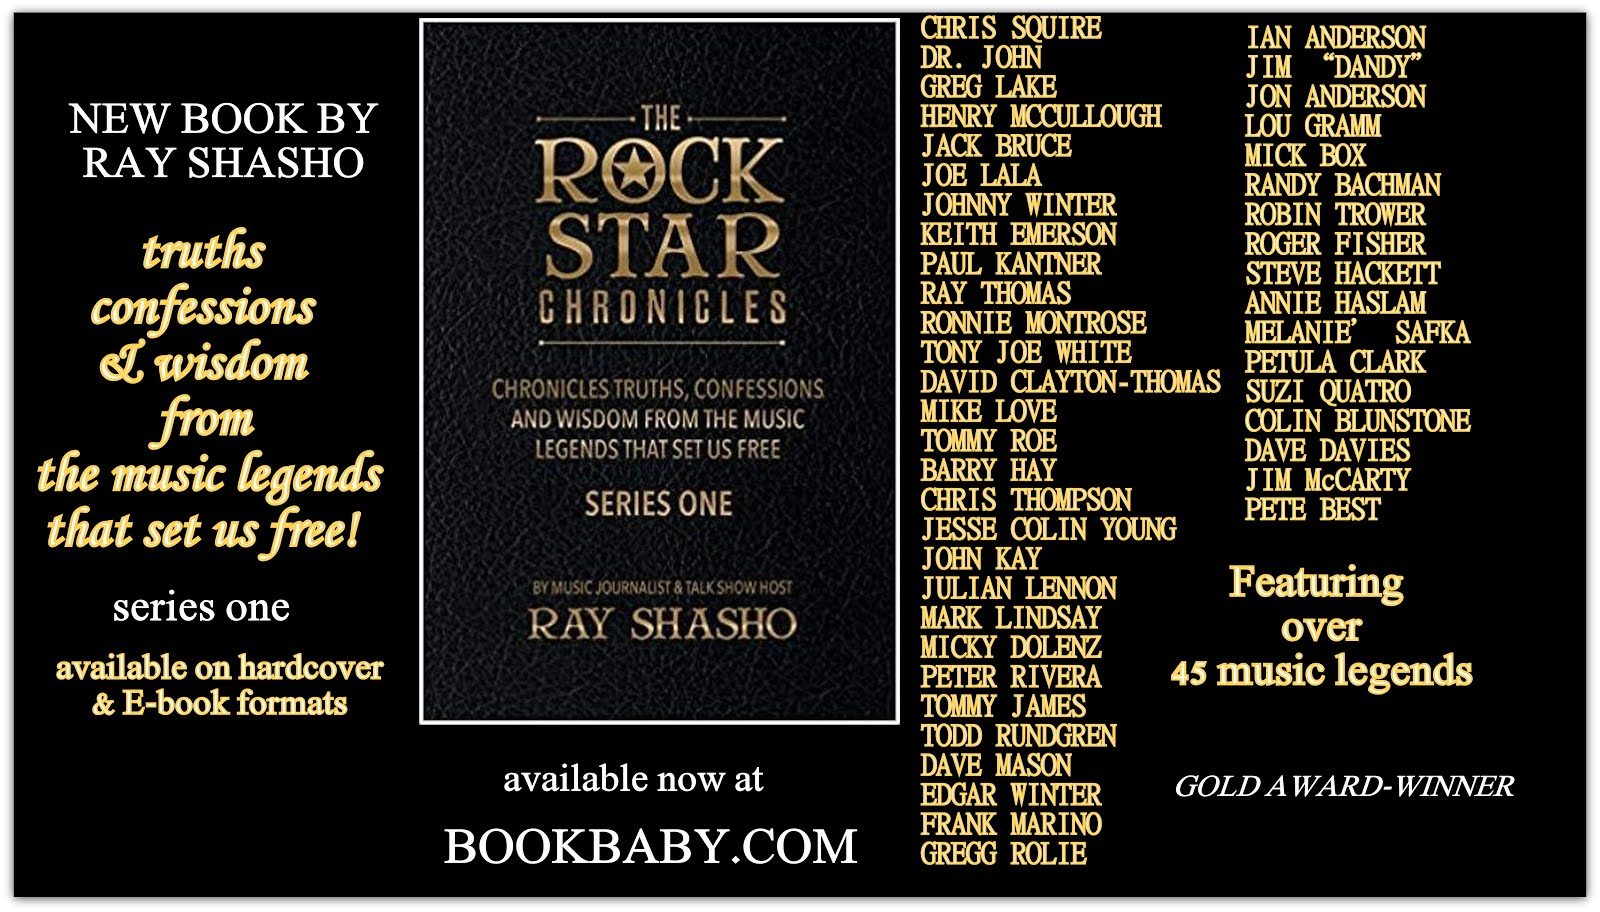 THE ROCK STAR CHRONICLES-SERIES ONE